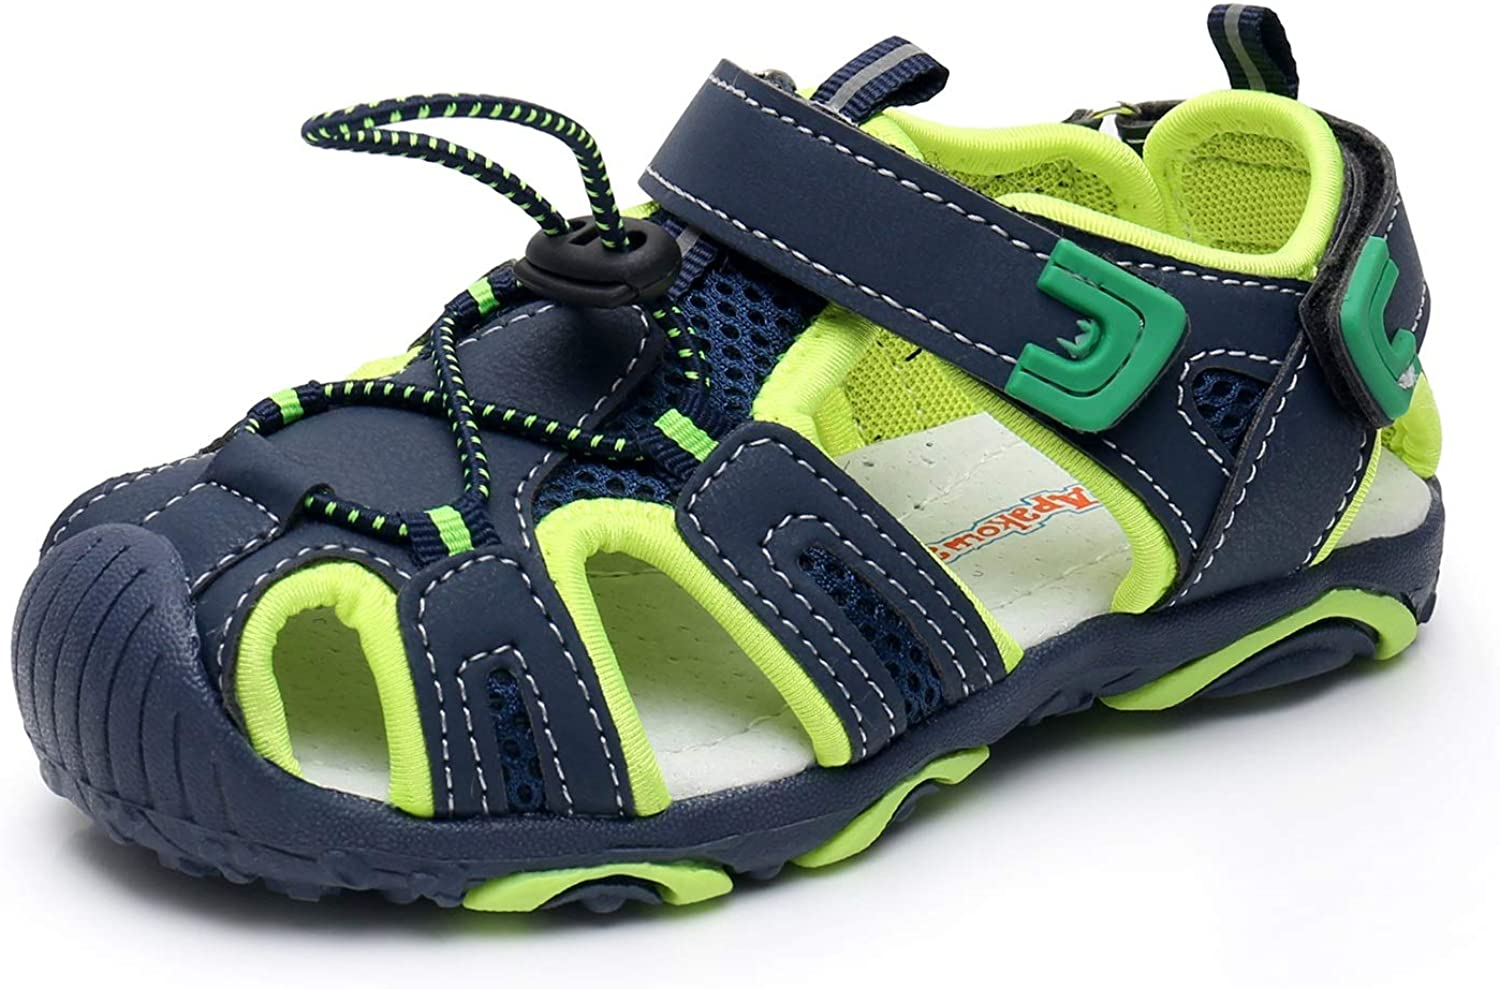 Amazon.com   Apakowa Kids Boys Outdoor Athletic Sport Closed-Toe Sandals  Boys Breathable Mesh Water Sandals Shoes (Toddler/Little Kid) (Color :  Navy/Green, Size : 12 M US Little Kid)   Sandals